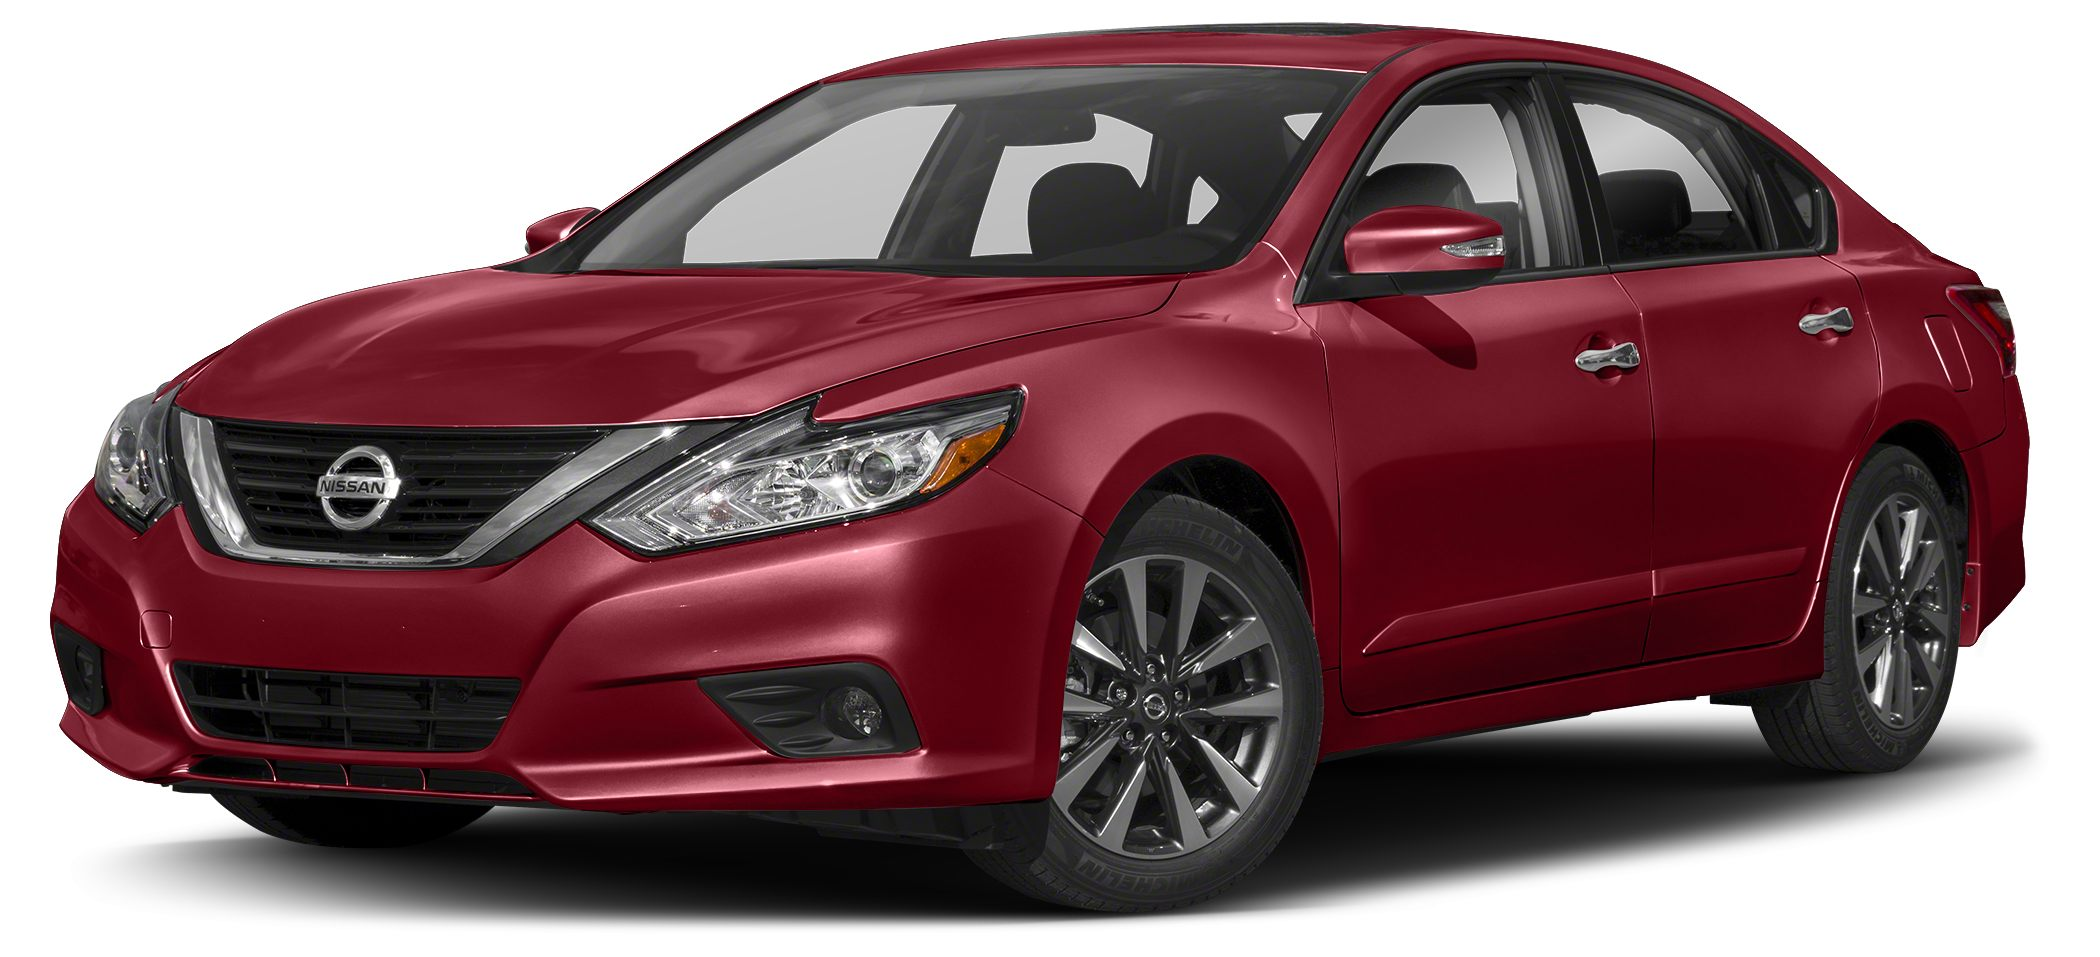 2016 Nissan Altima 25 SL Priced to sell 4117 below MSRP -Great Gas Mileage- Heated Front Sea